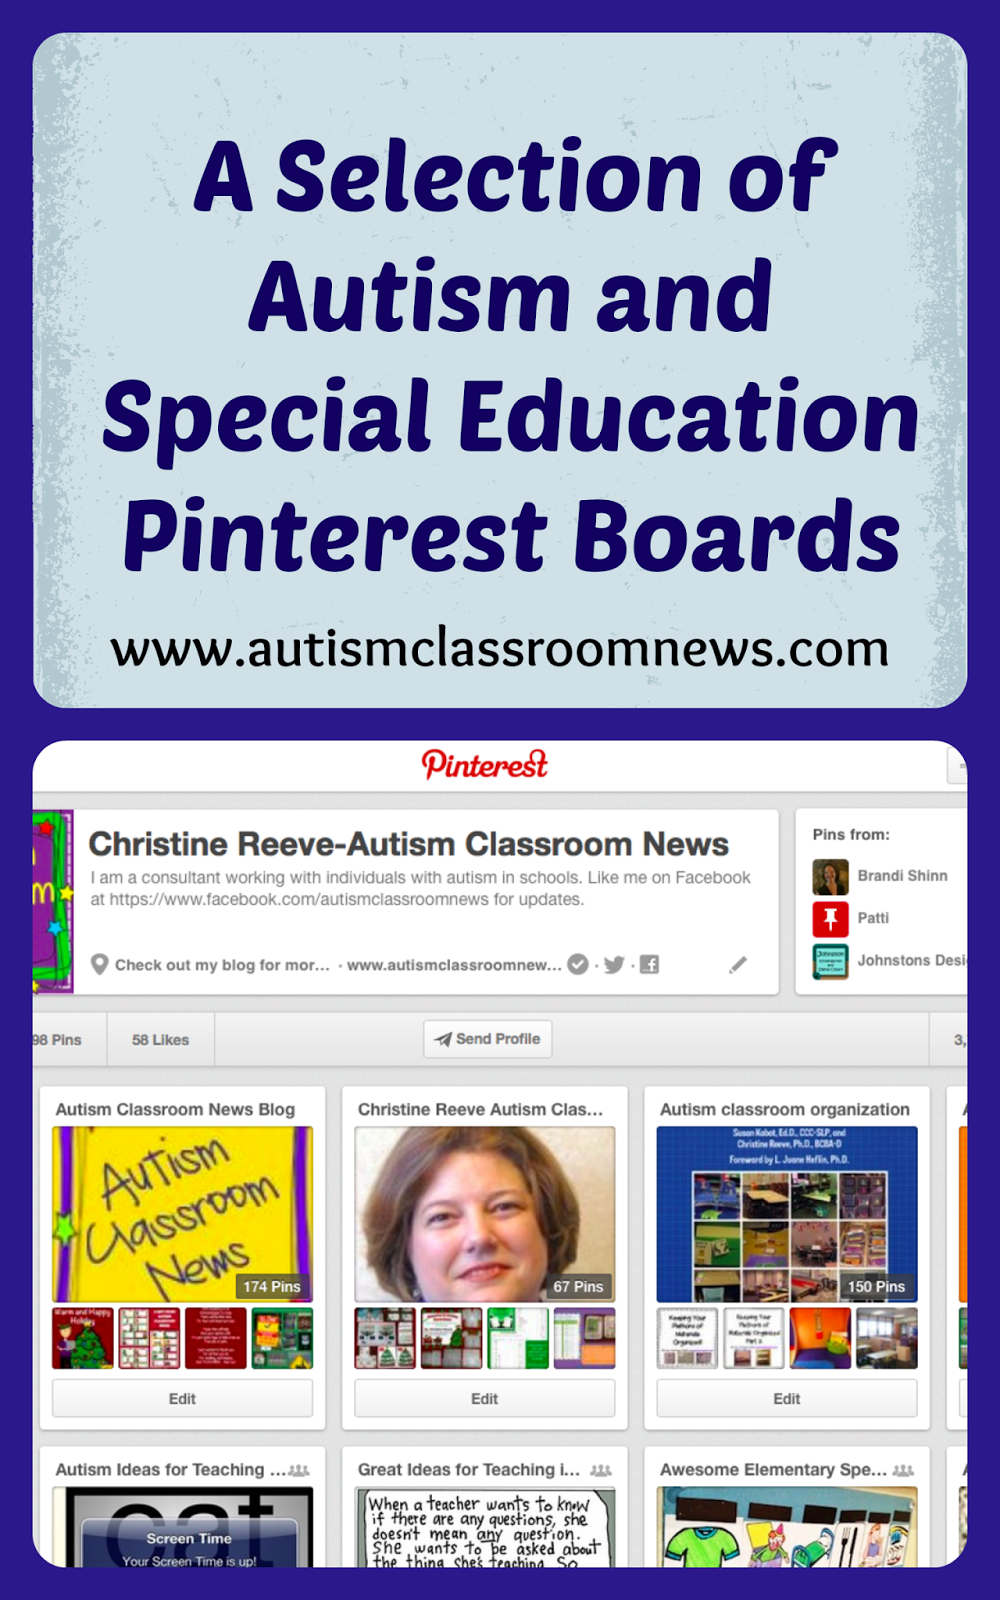 Education: a selection of news